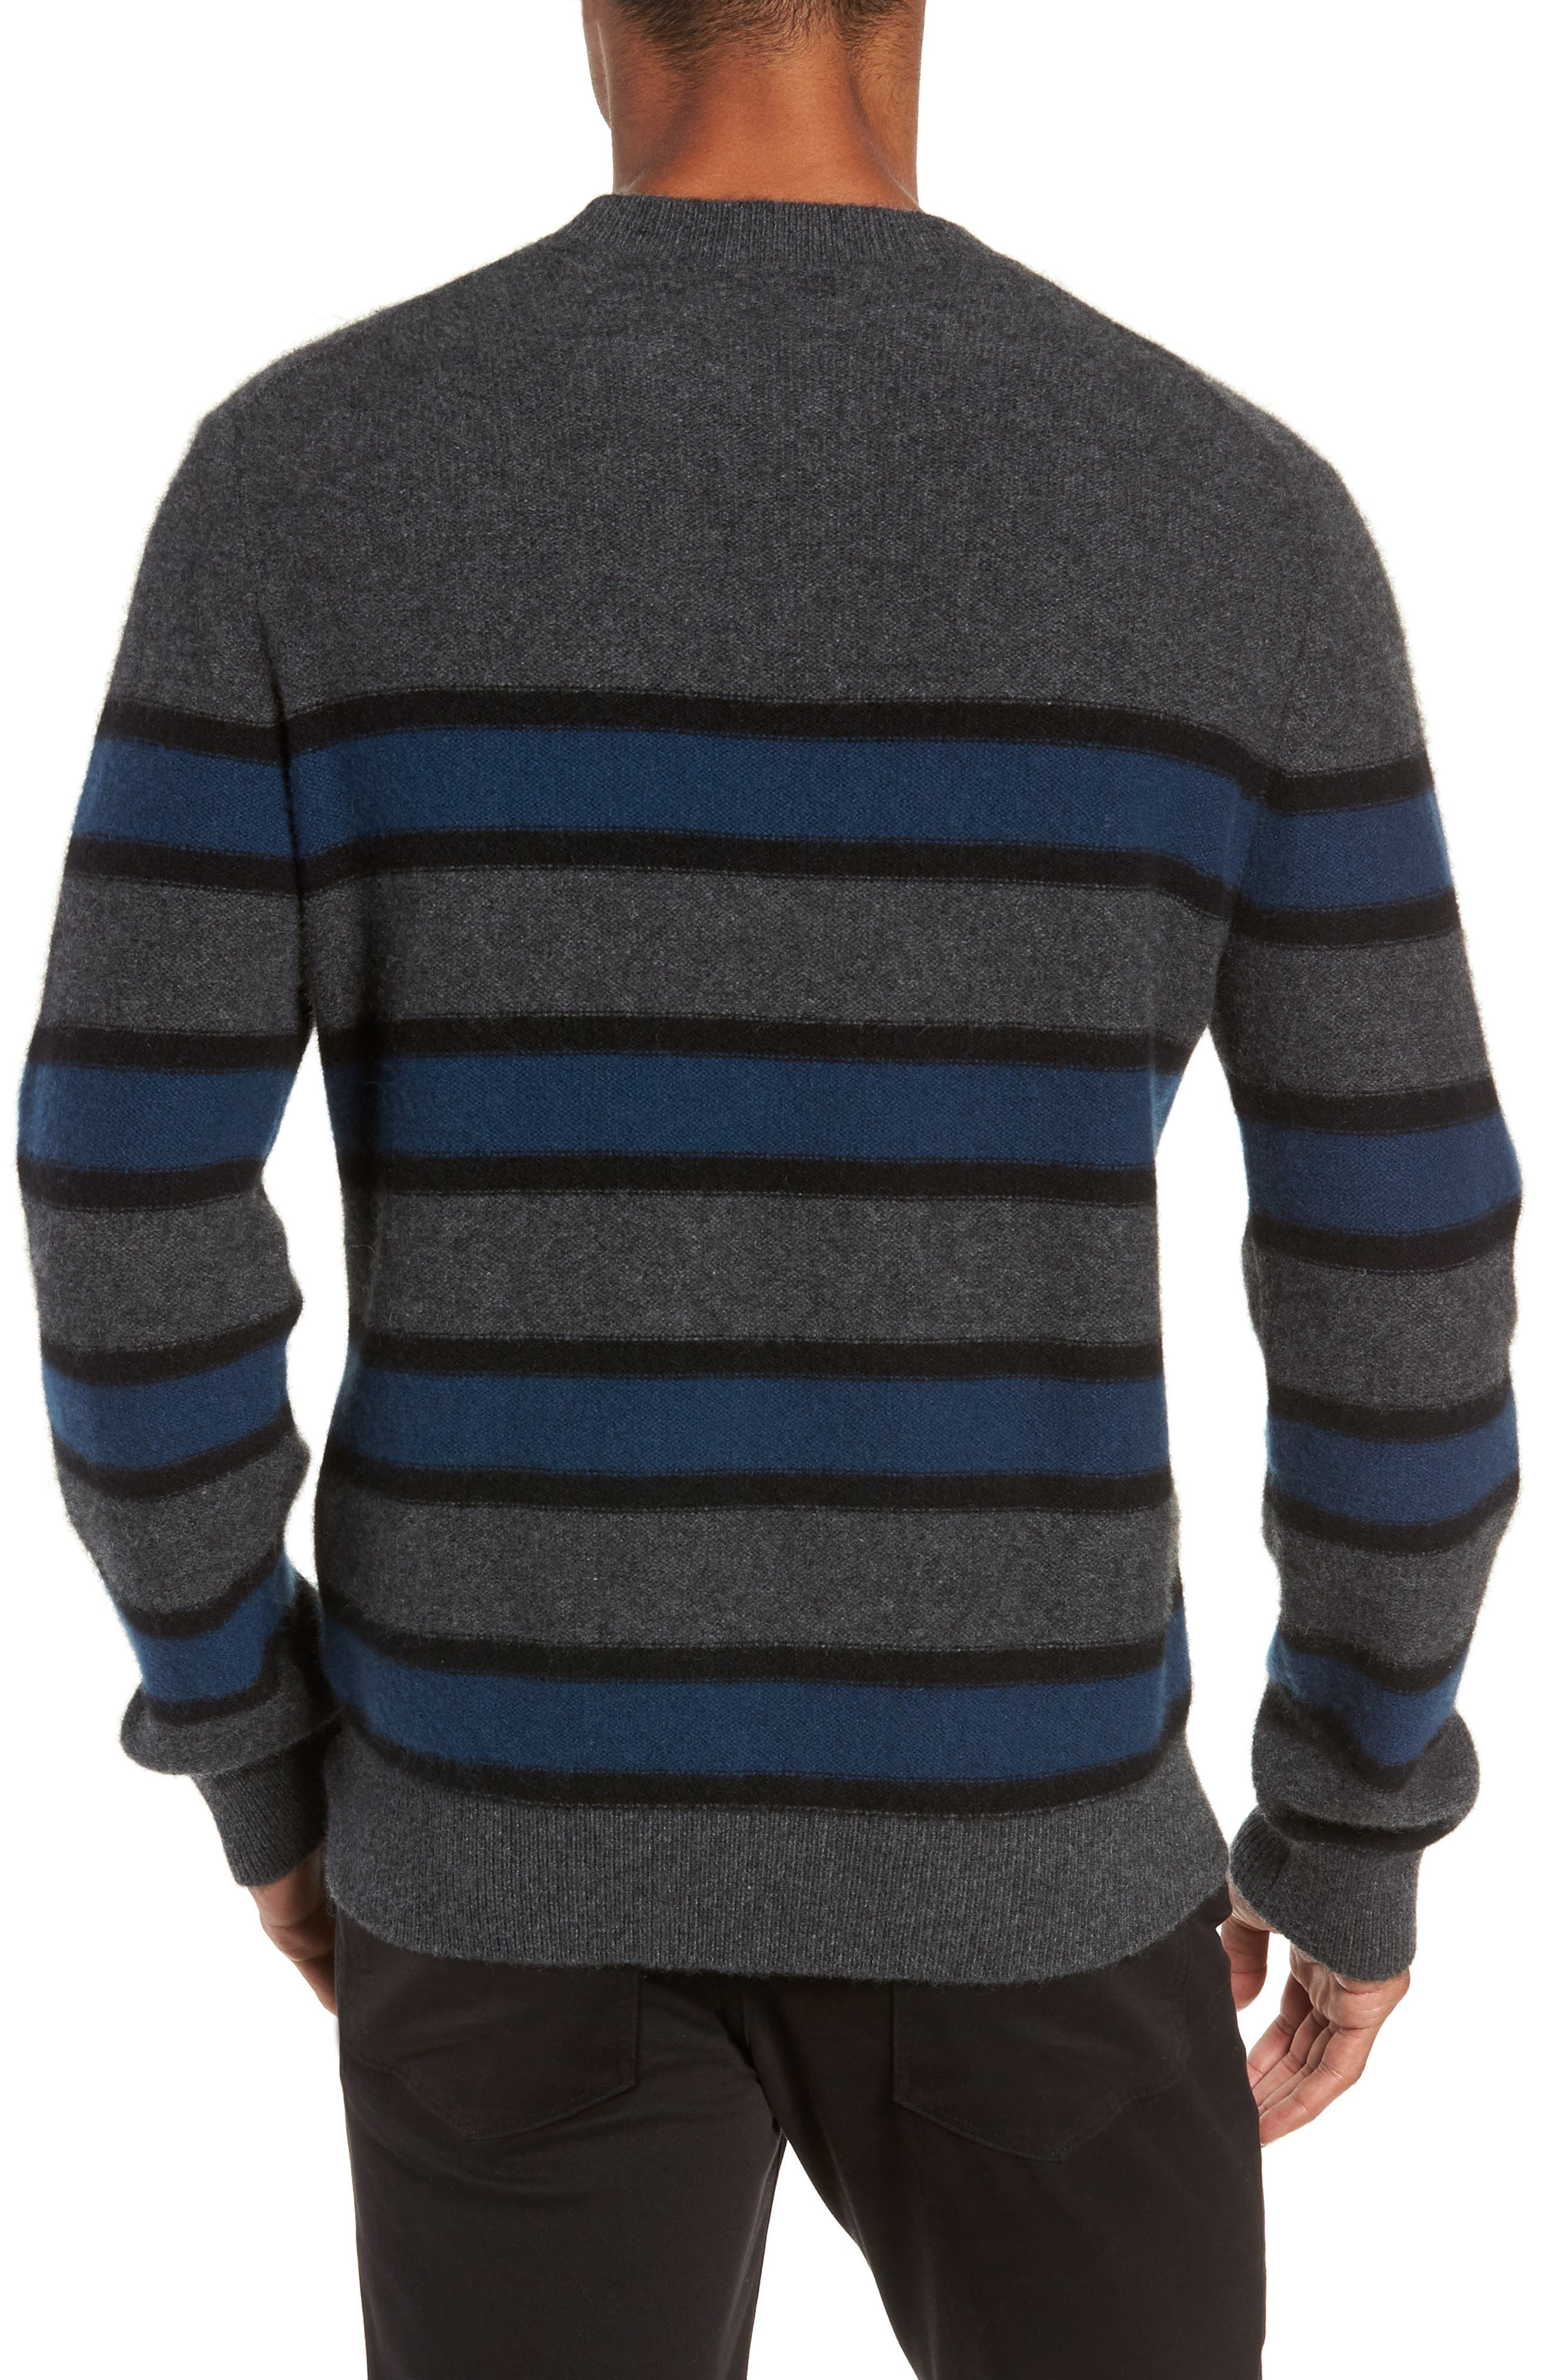 Regular Fit Stripe Cashmere Sweater,                             Alternate thumbnail 2, color,                             DARK HEATHER GREY/BLUE